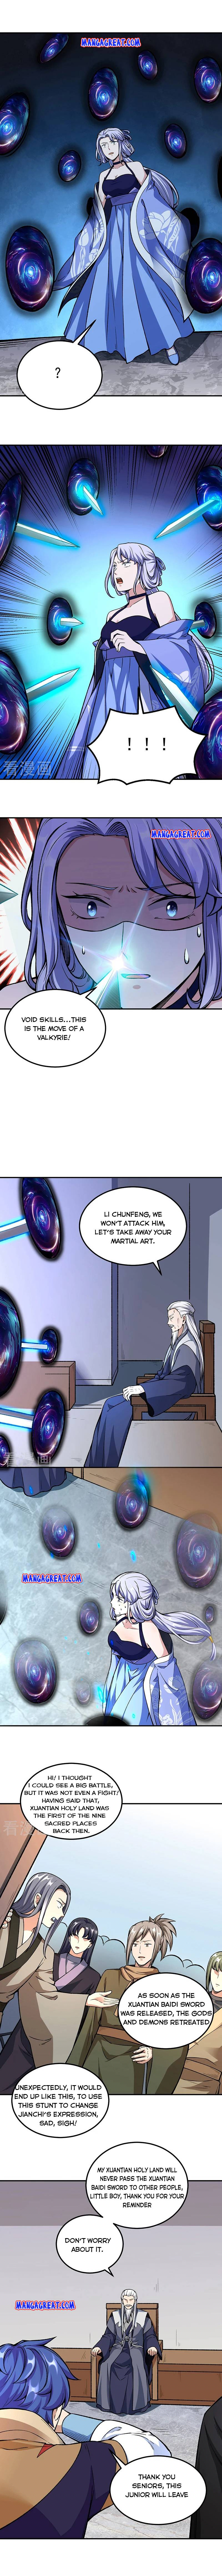 Martial Arts Reigns - chapter 263 - #2